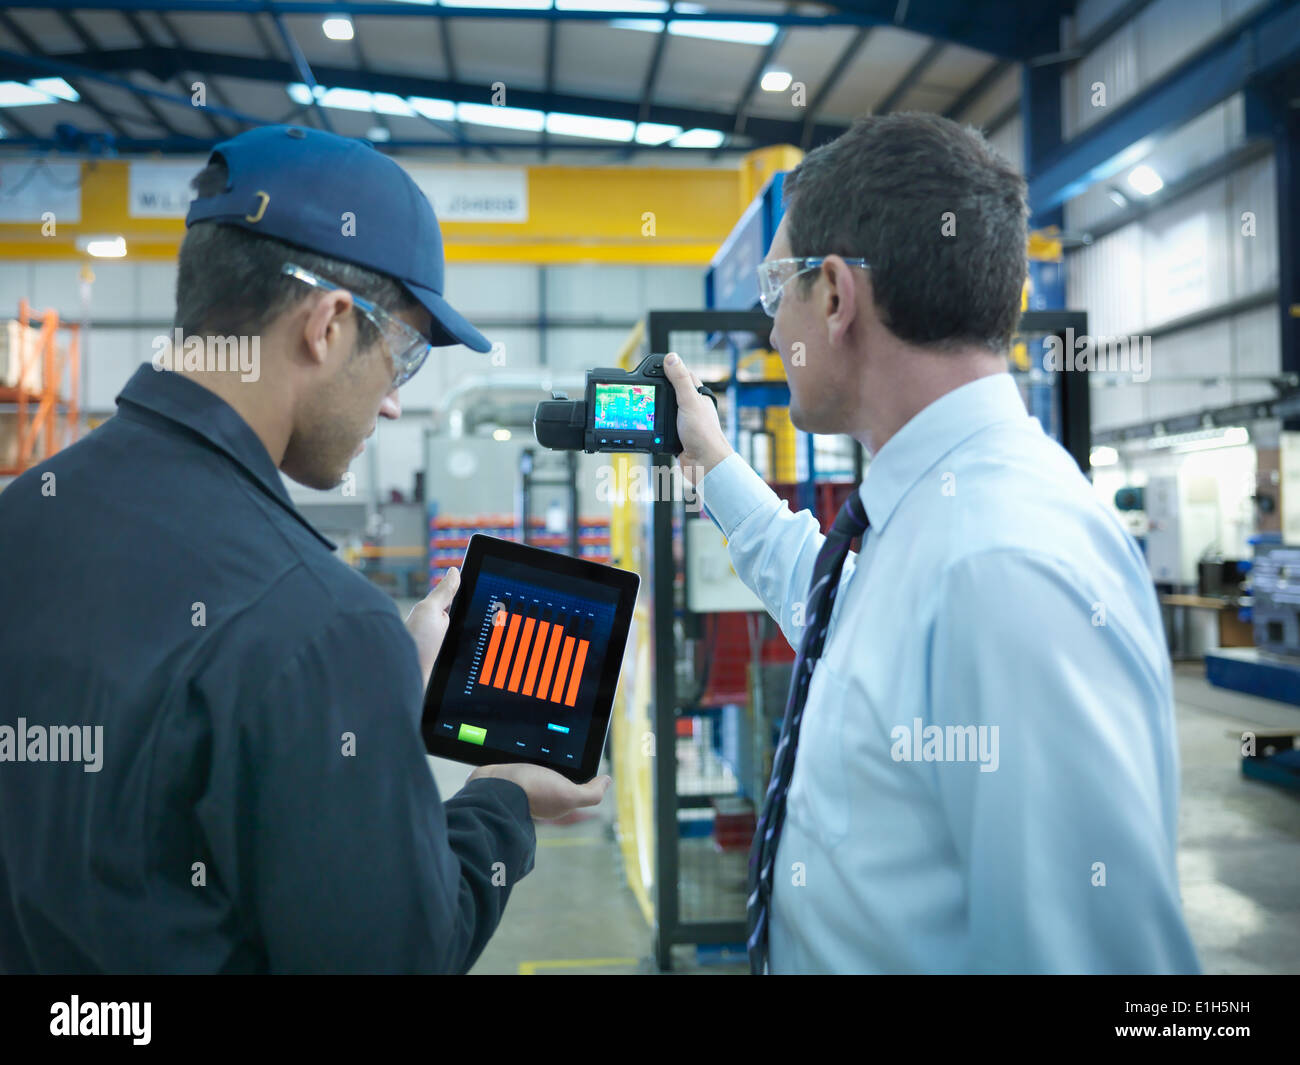 Office and factory worker using digital tablet and infra red camera to check power use in factory - Stock Image